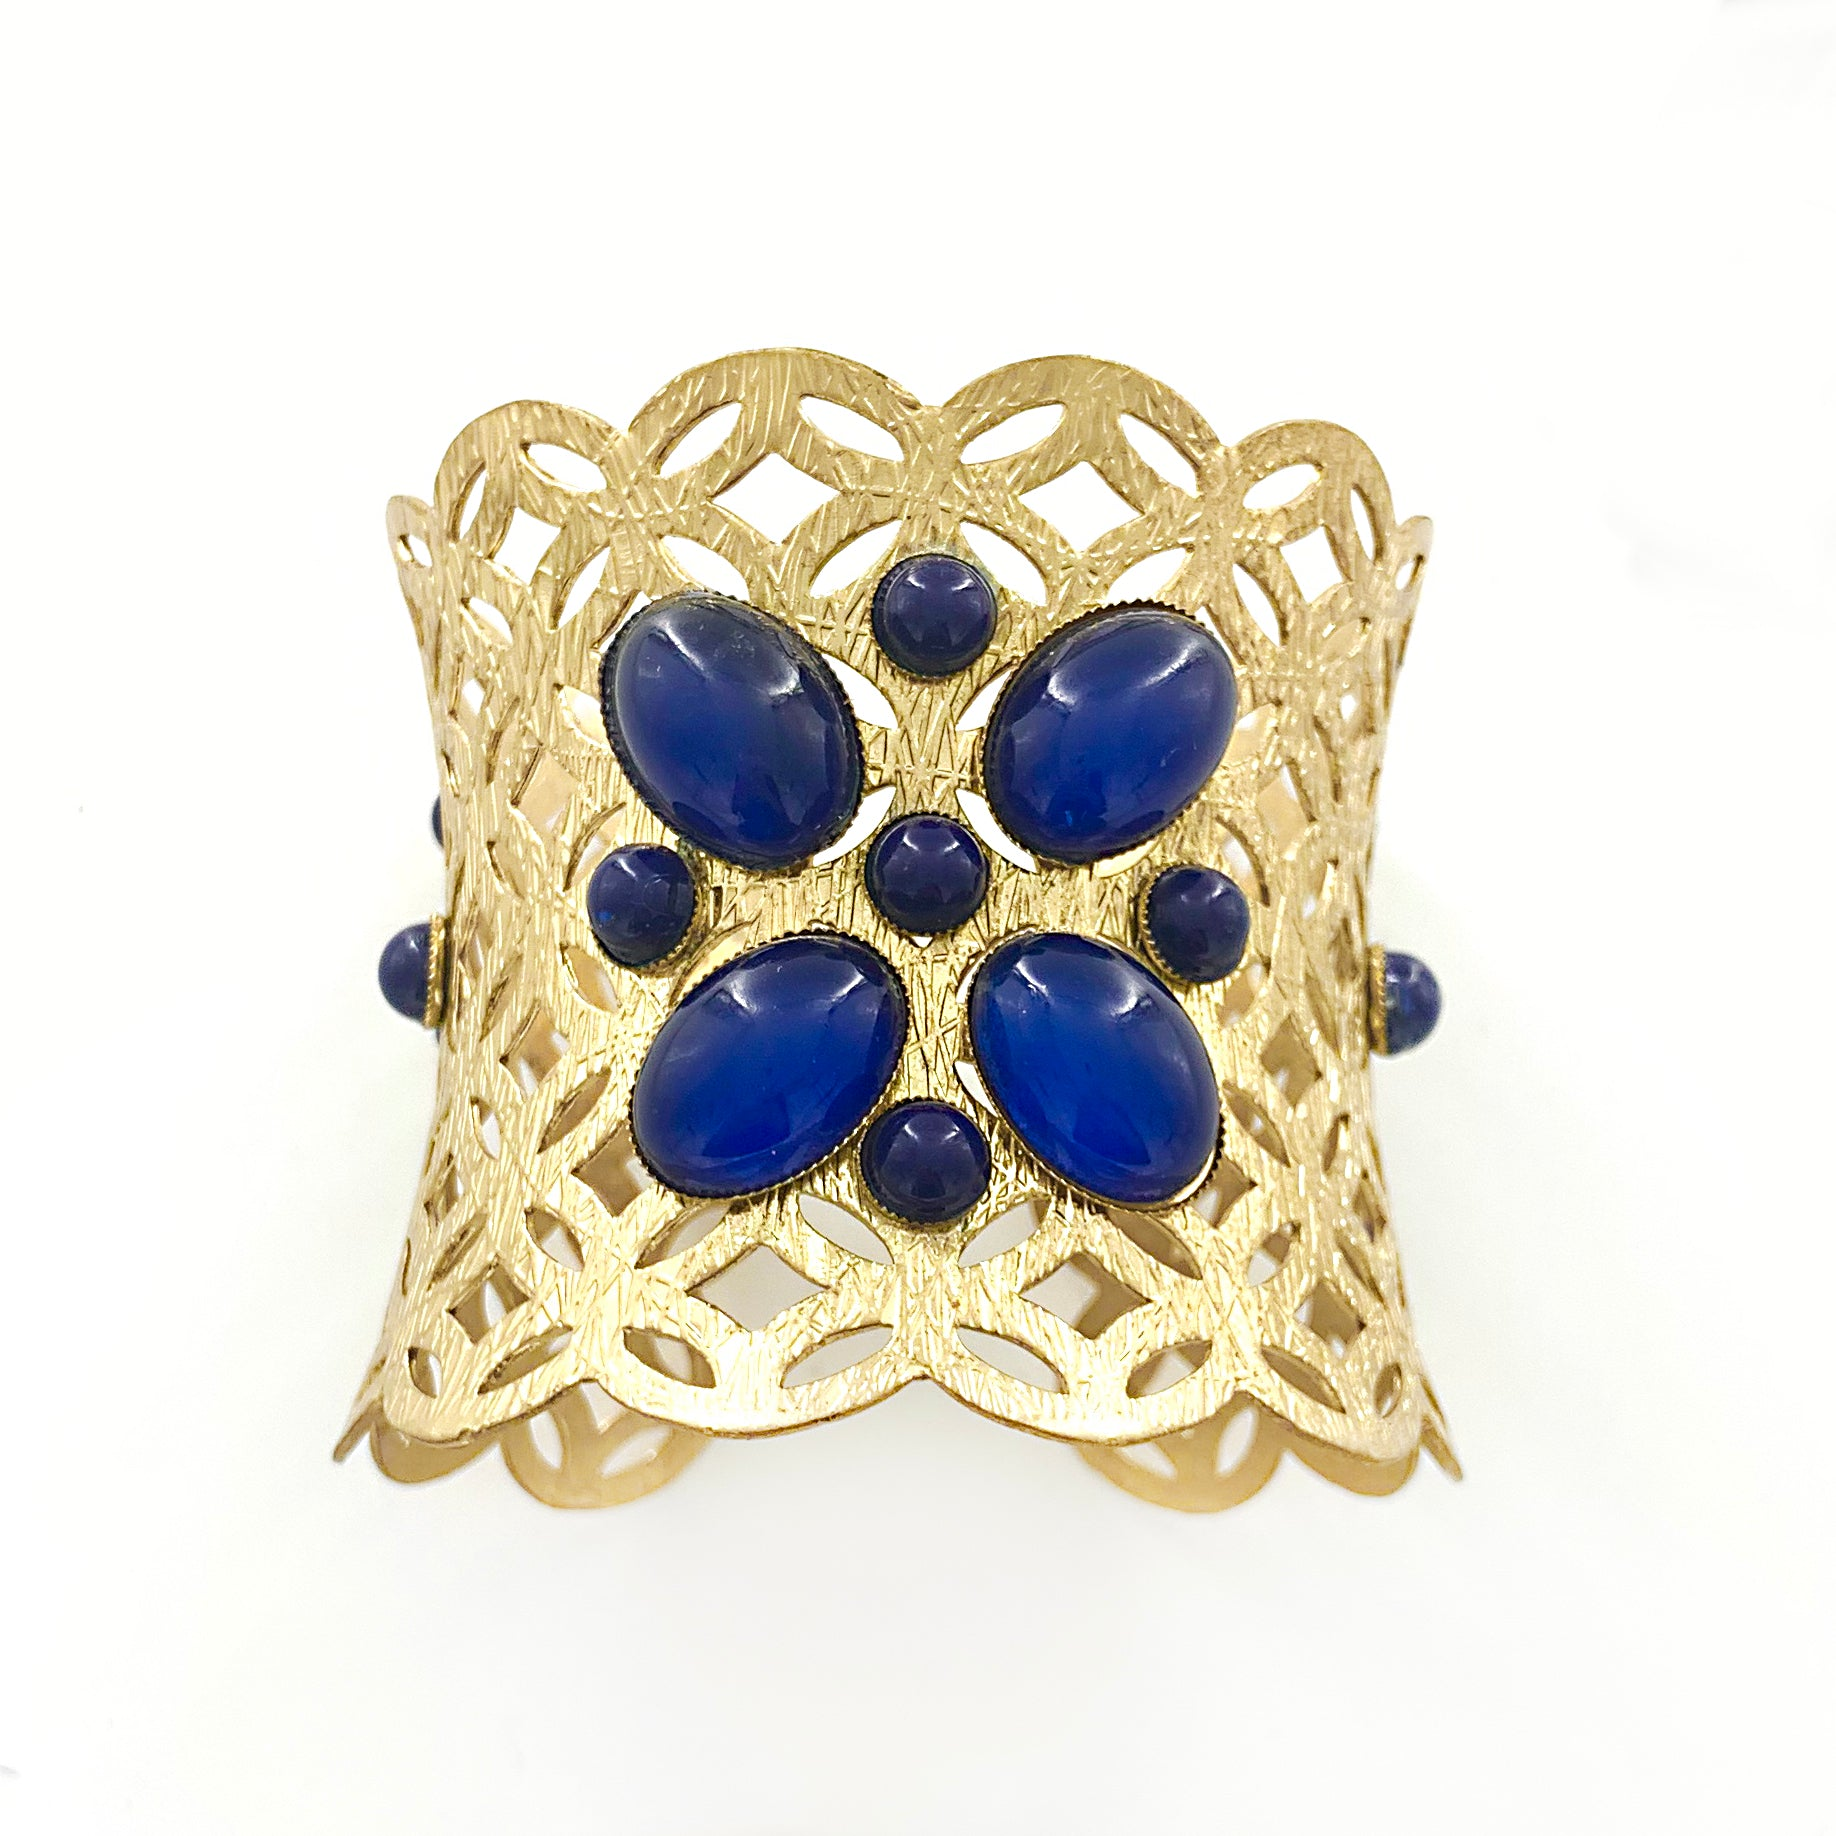 Matt gold cuff with geometric cut-outs and blue beads